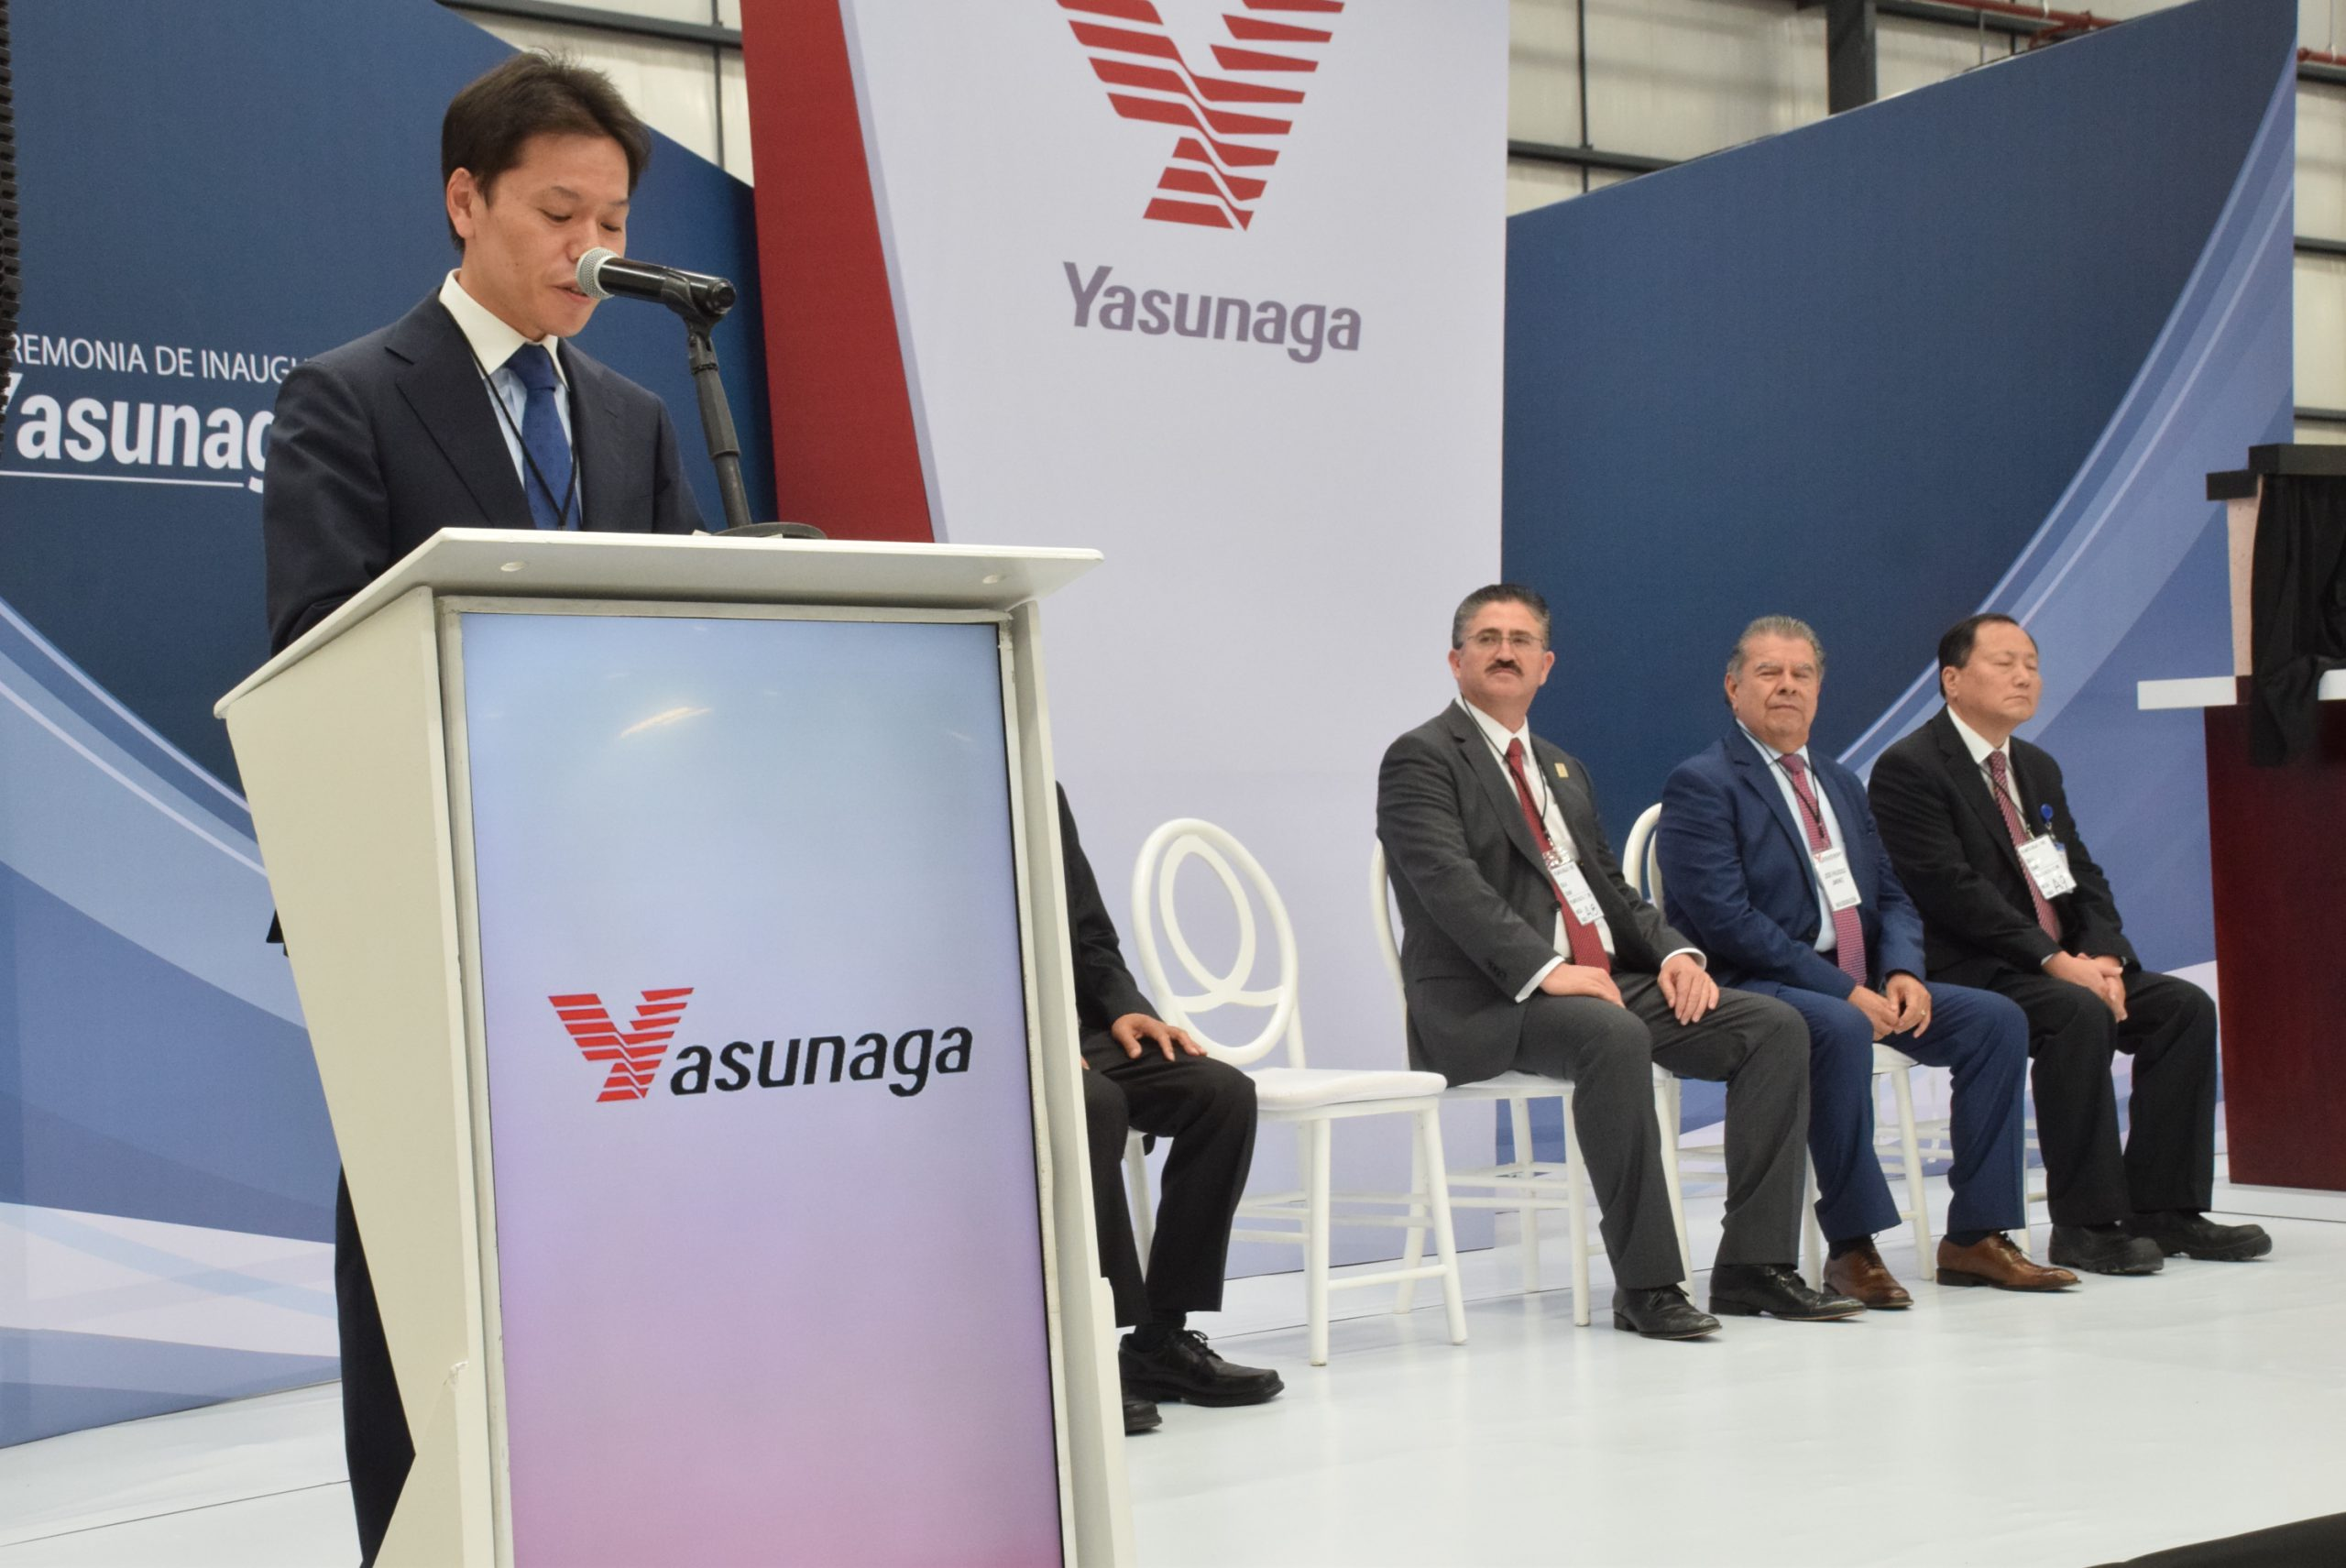 Photo of Inauguran la empresa Yasunaga en el Parque Industrial